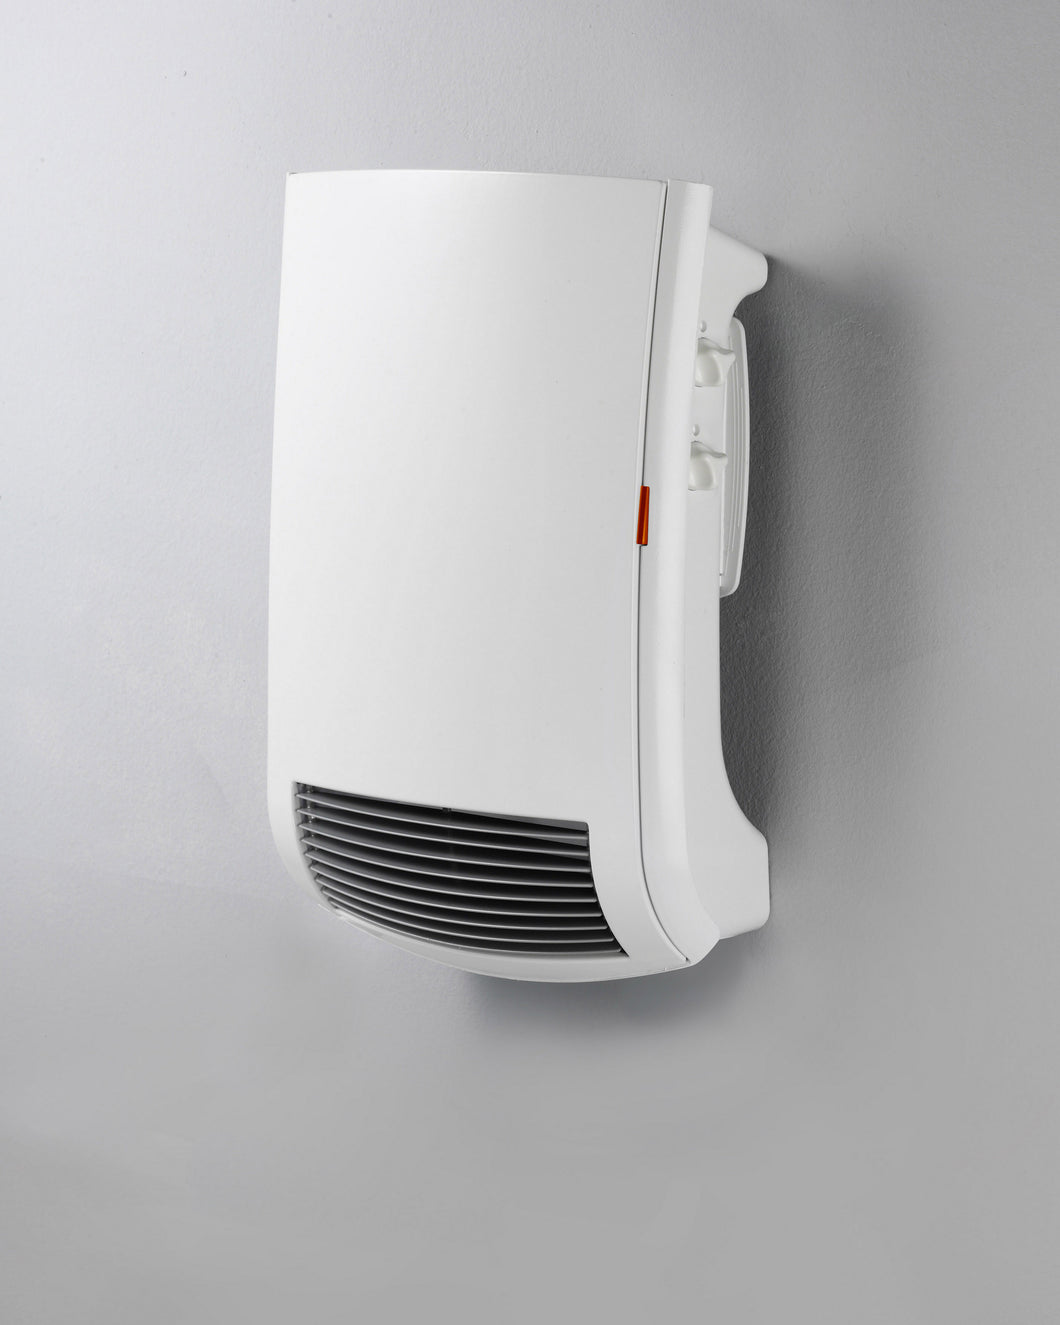 Thermofan TF1000 Compact and Powerful Fan Heater